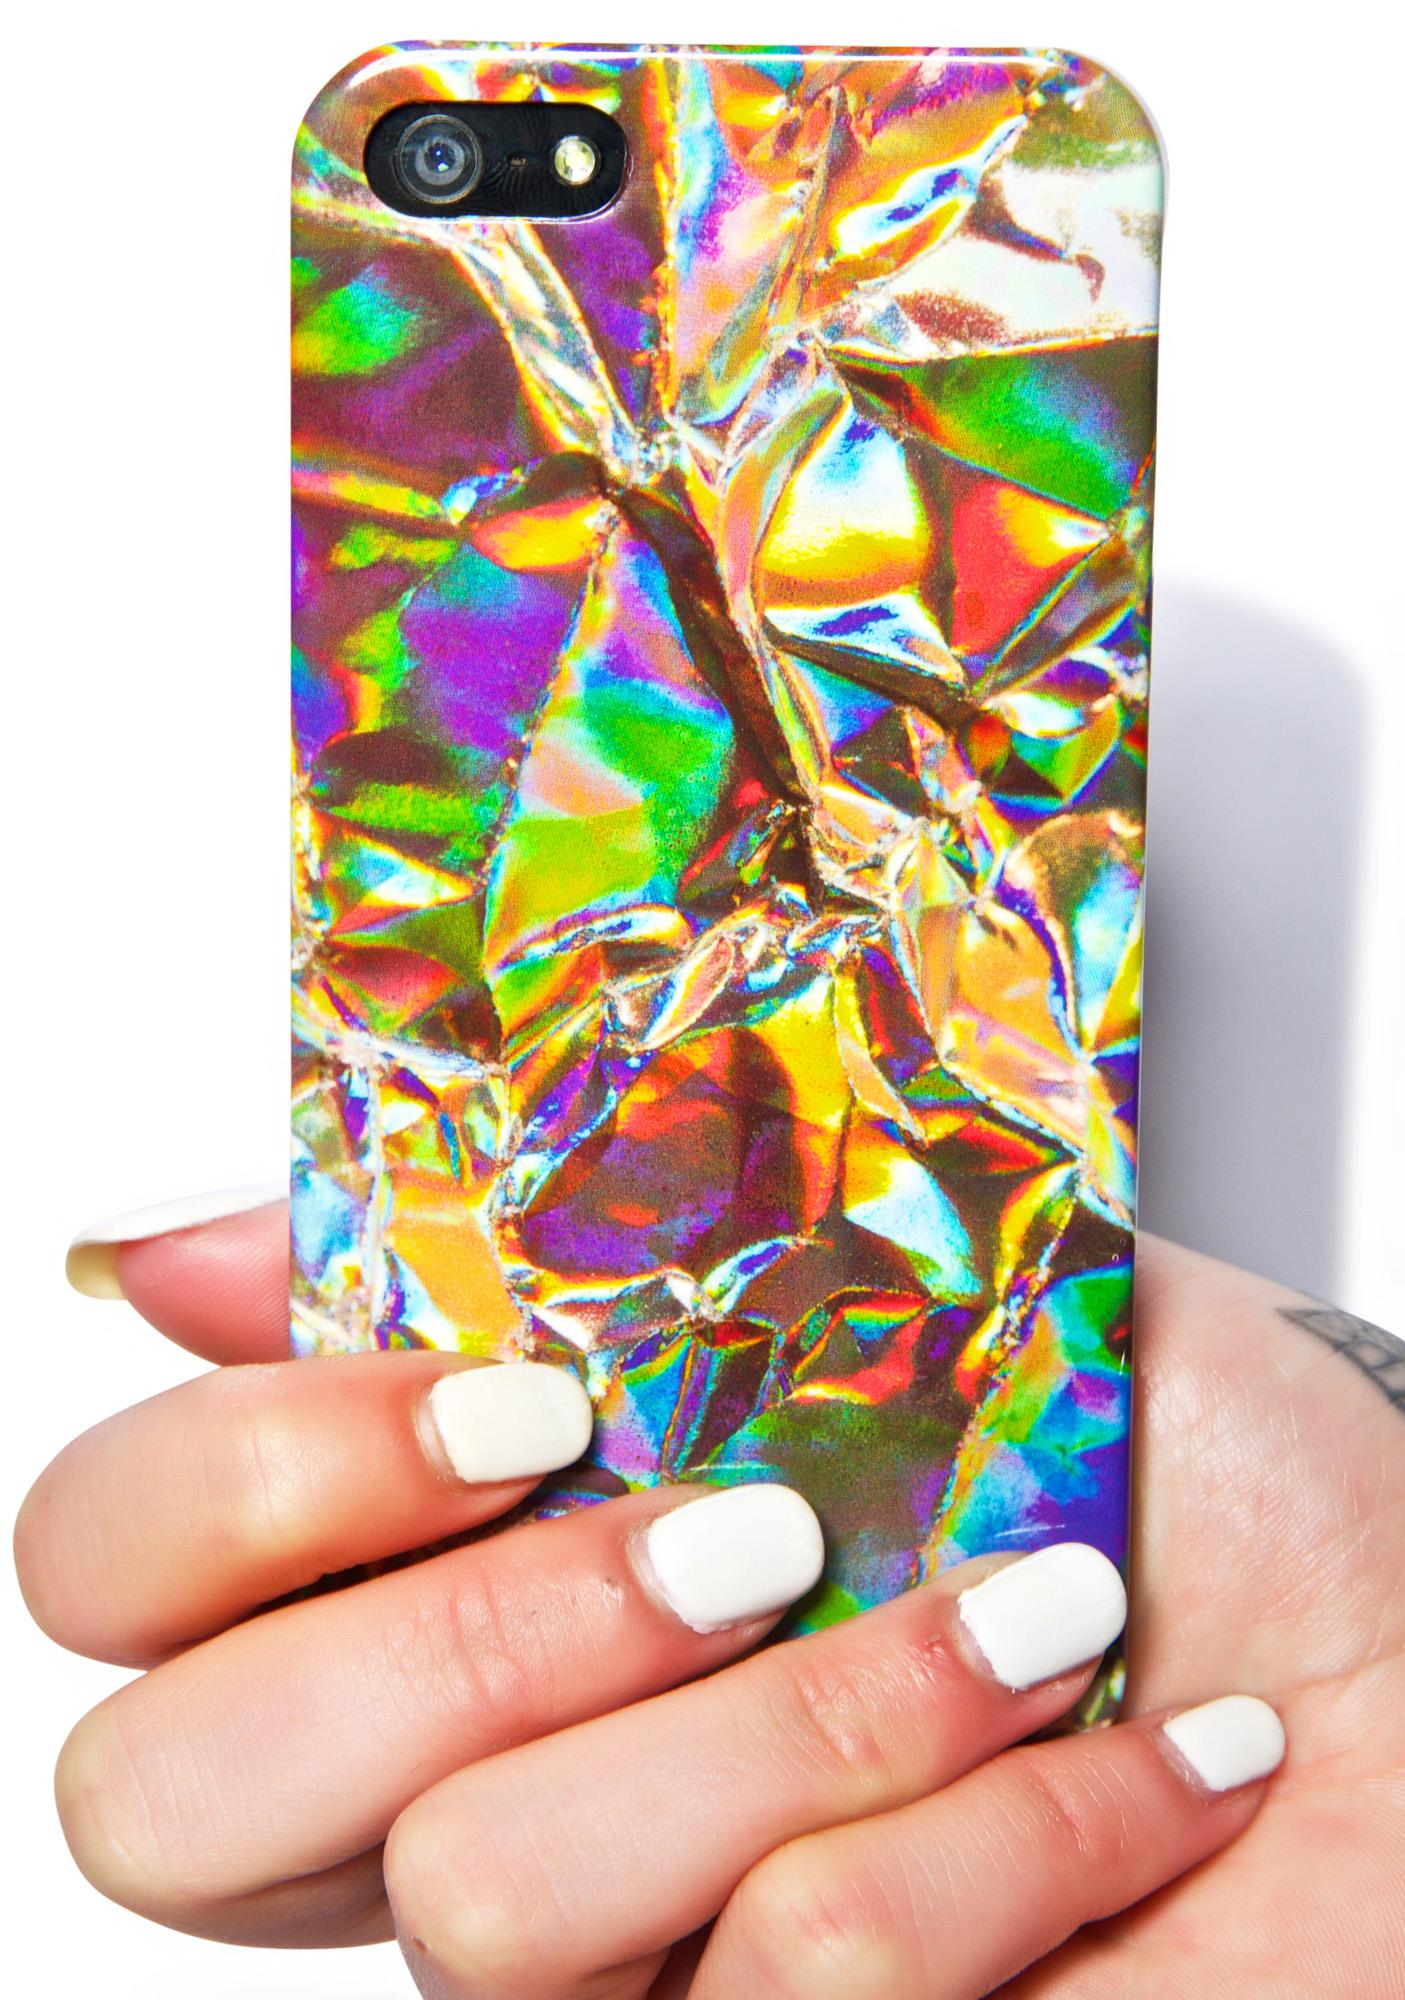 Local Heroes Holographic Foil iPhone 5 Case